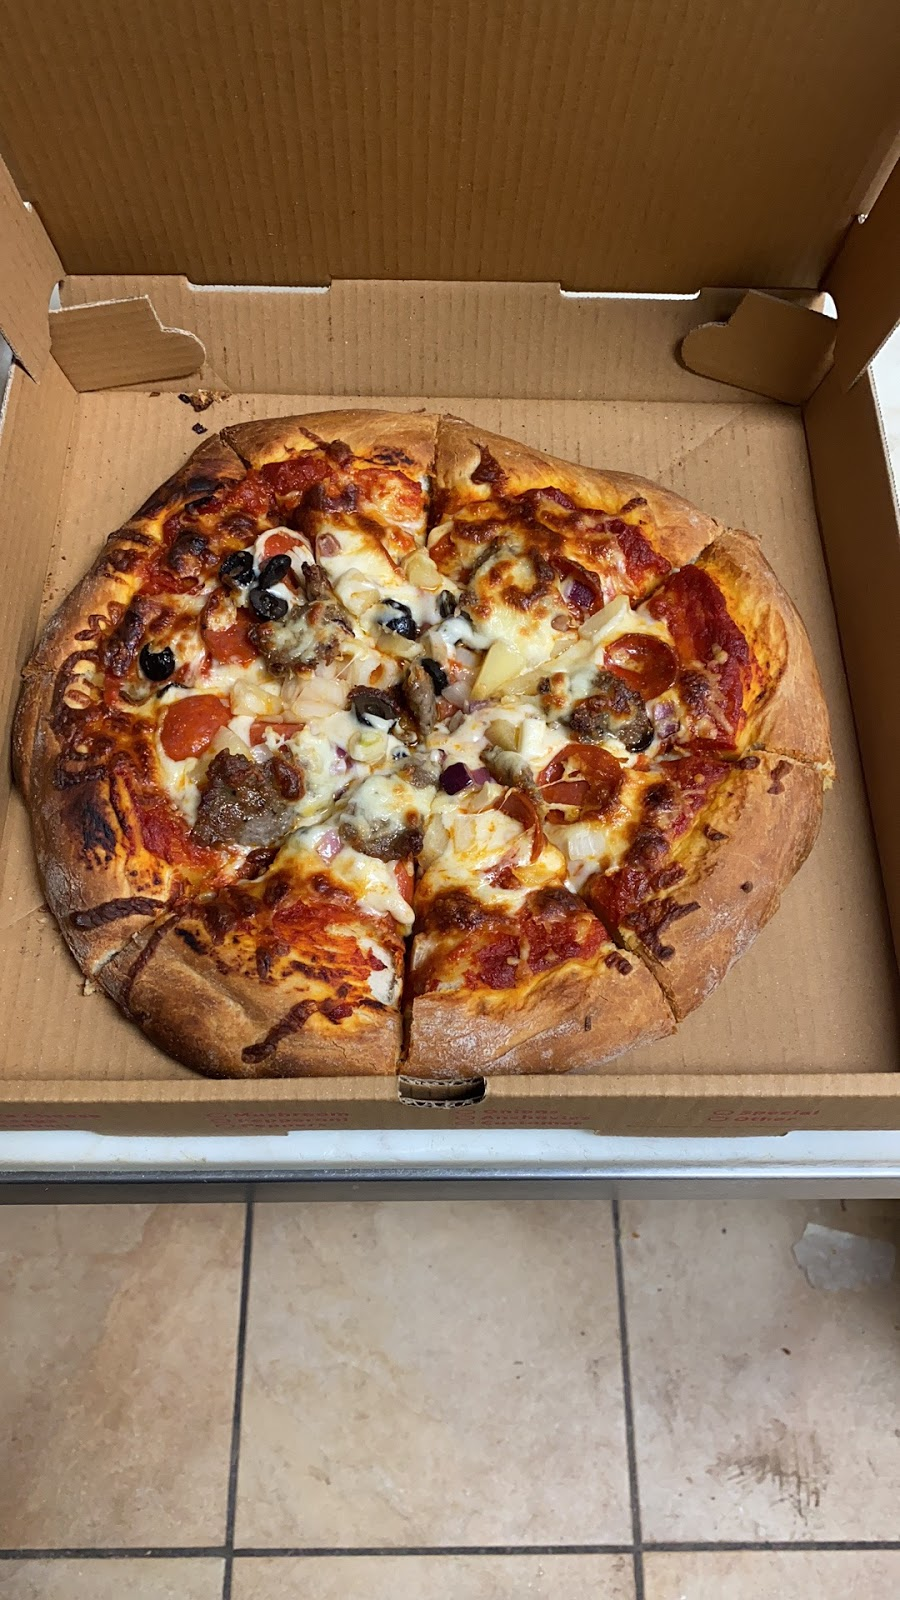 George's Pizza | restaurant | 234 W Camp St, East Peoria, IL 61611, USA | 3098392181 OR +1 309-839-2181